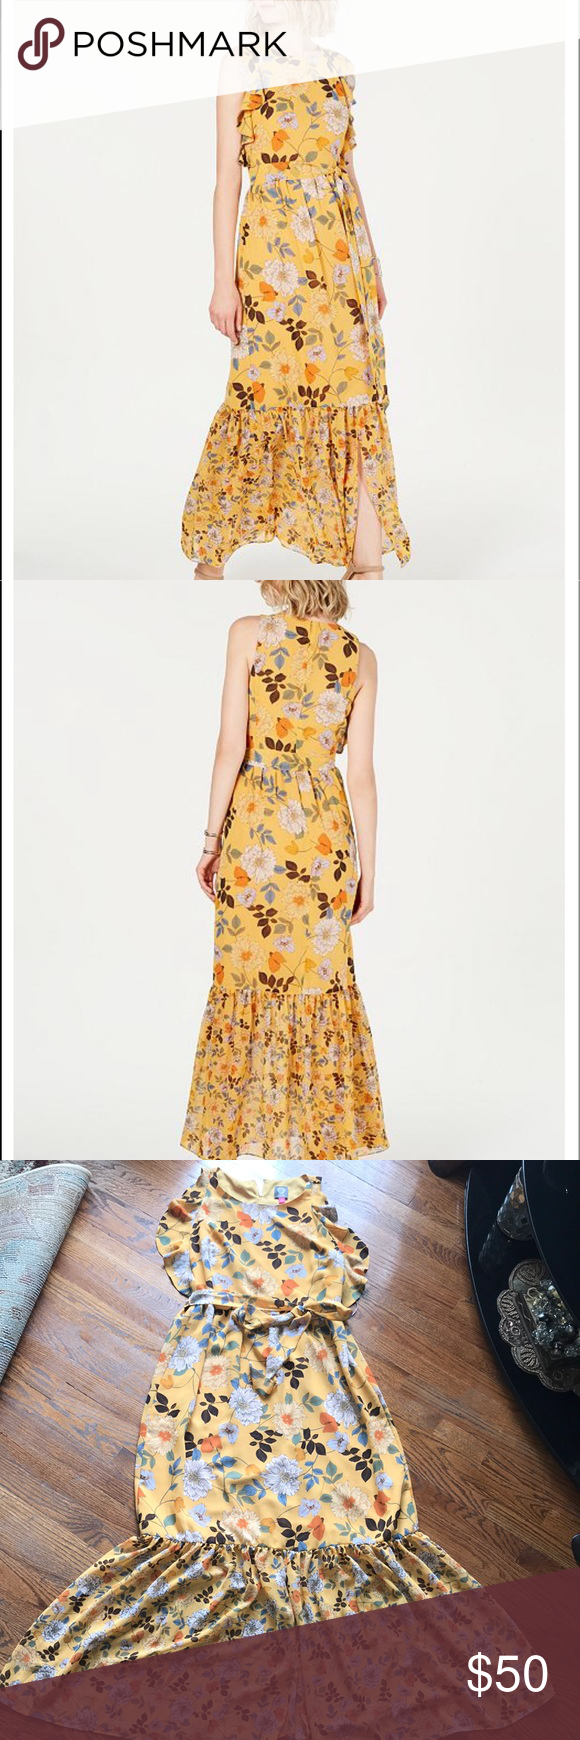 Vince Camuto Maxi Dress Yellow Floral Maxi Dress Maxi Dress Floral Maxi Dress [ 1740 x 580 Pixel ]